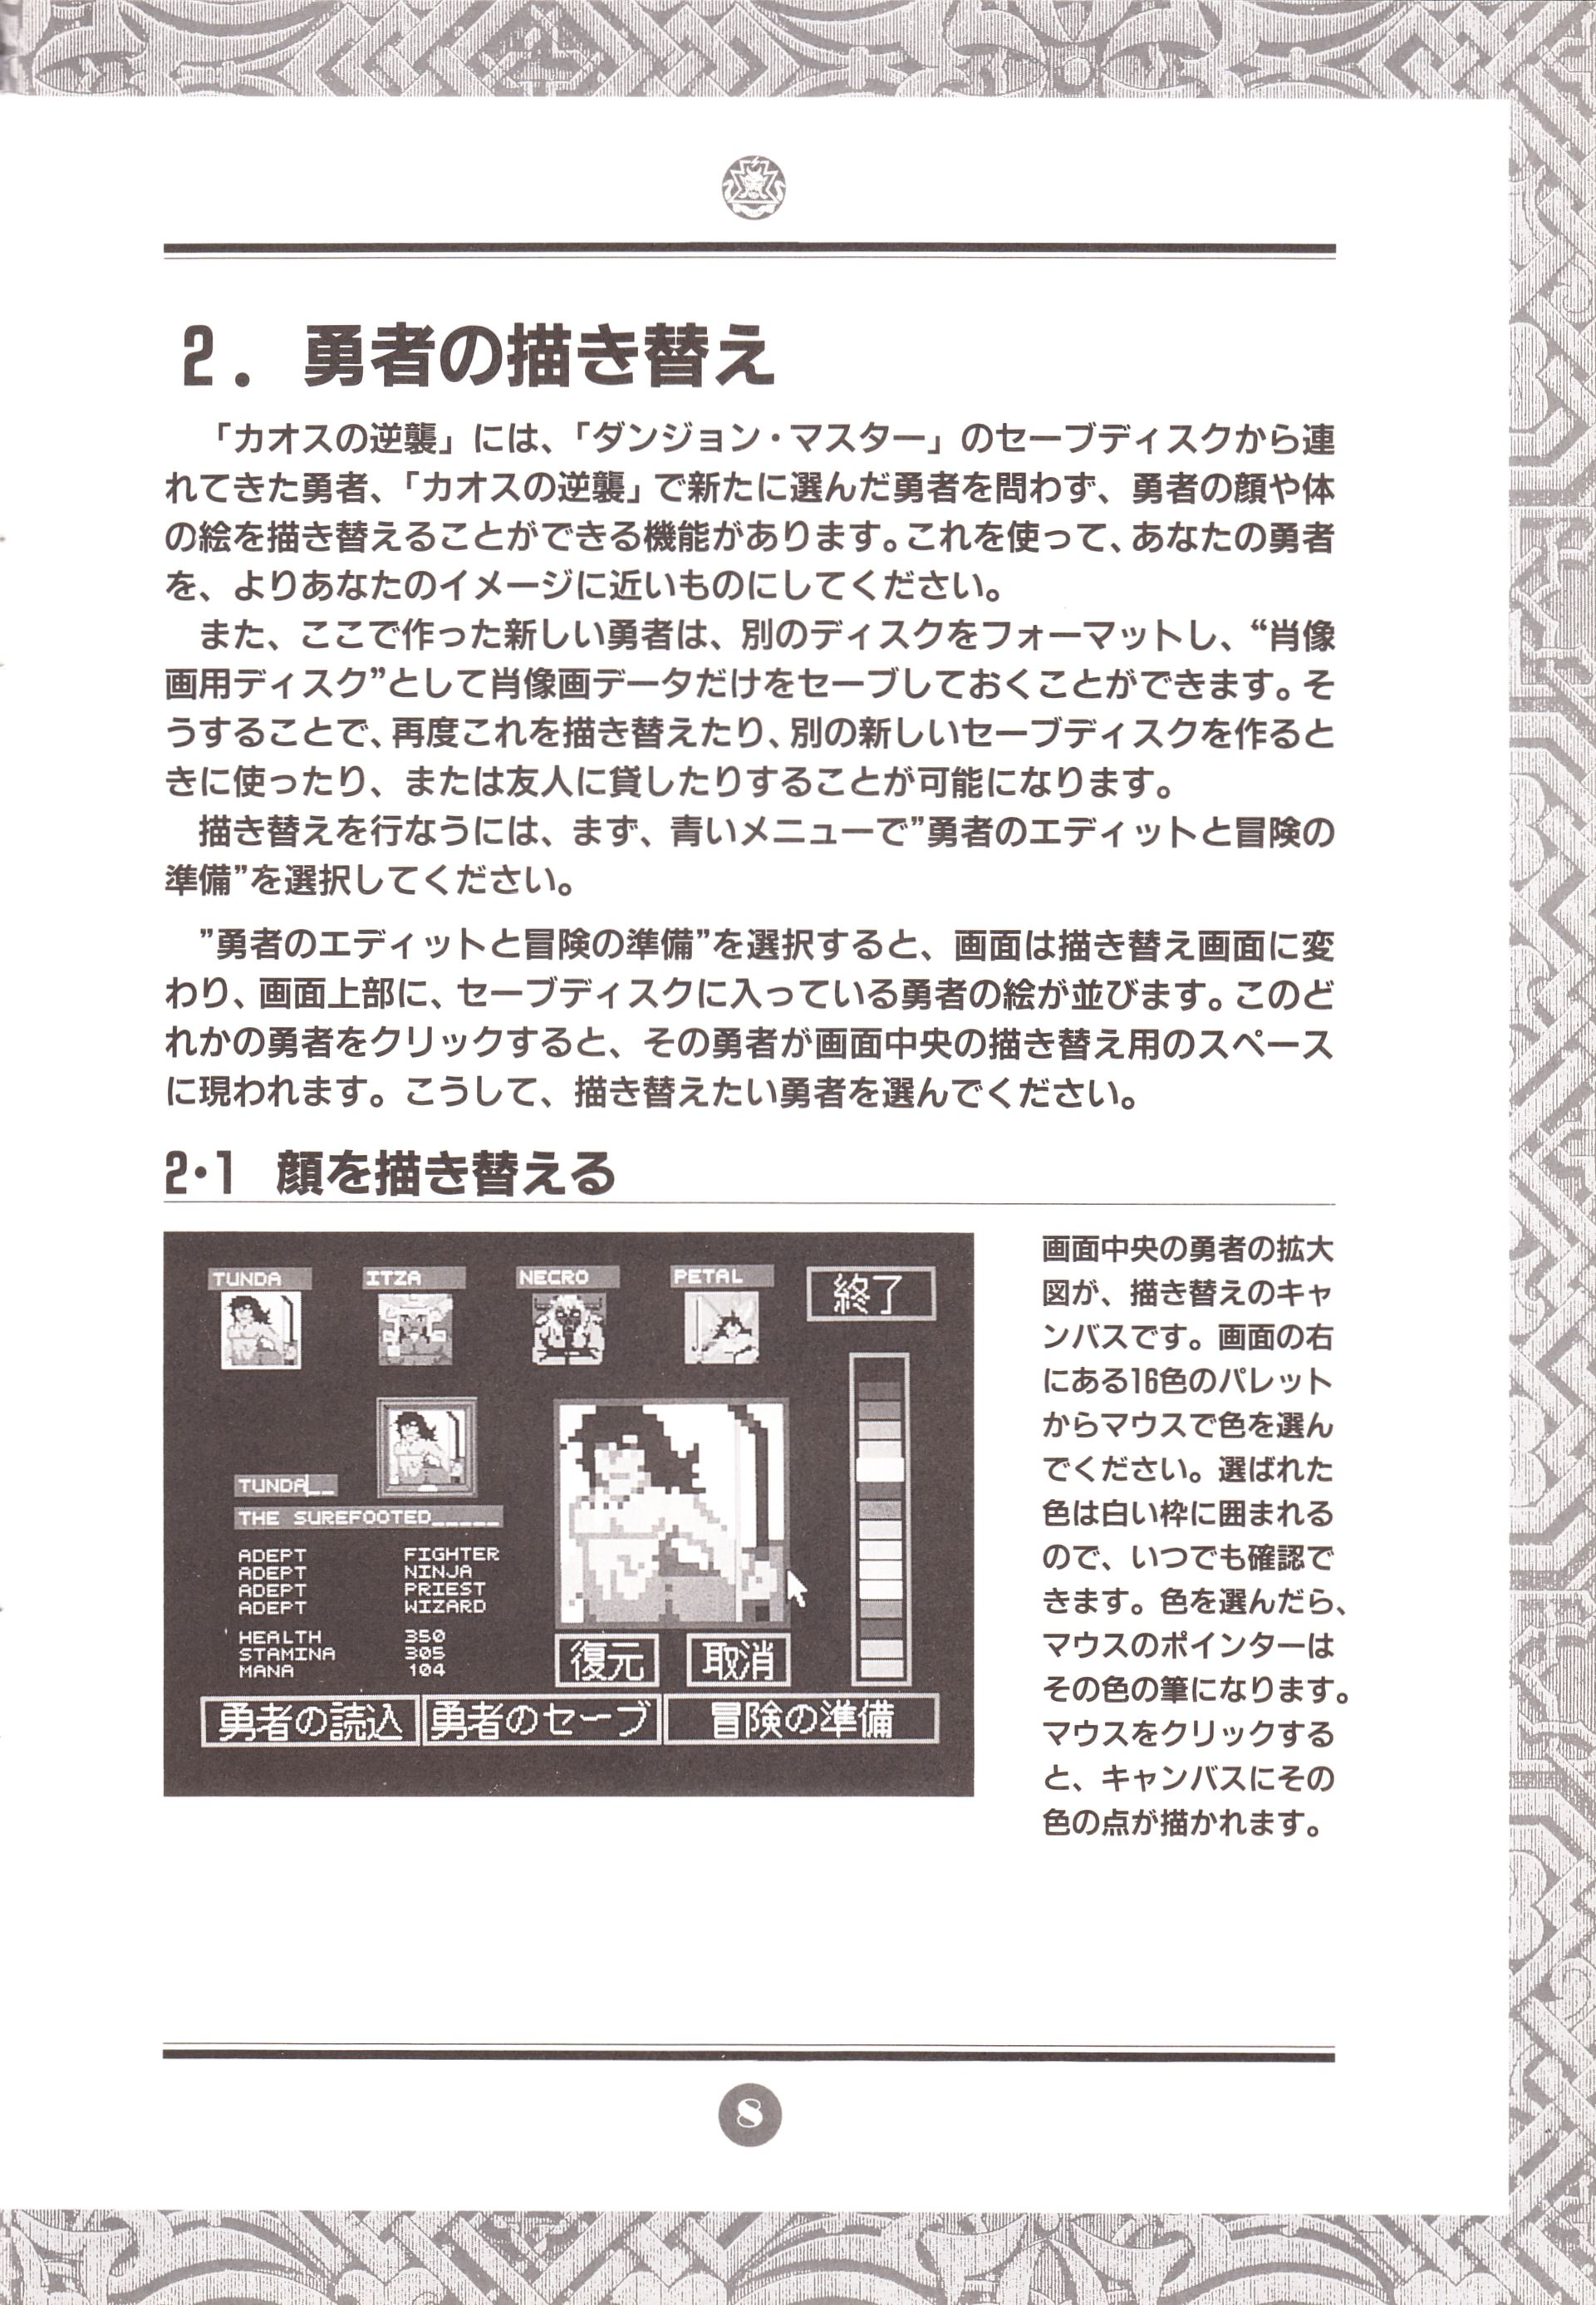 Game - Chaos Strikes Back - JP - PC-9801 - 3-5-inch - An Operation Manual - Page 011 - Scan